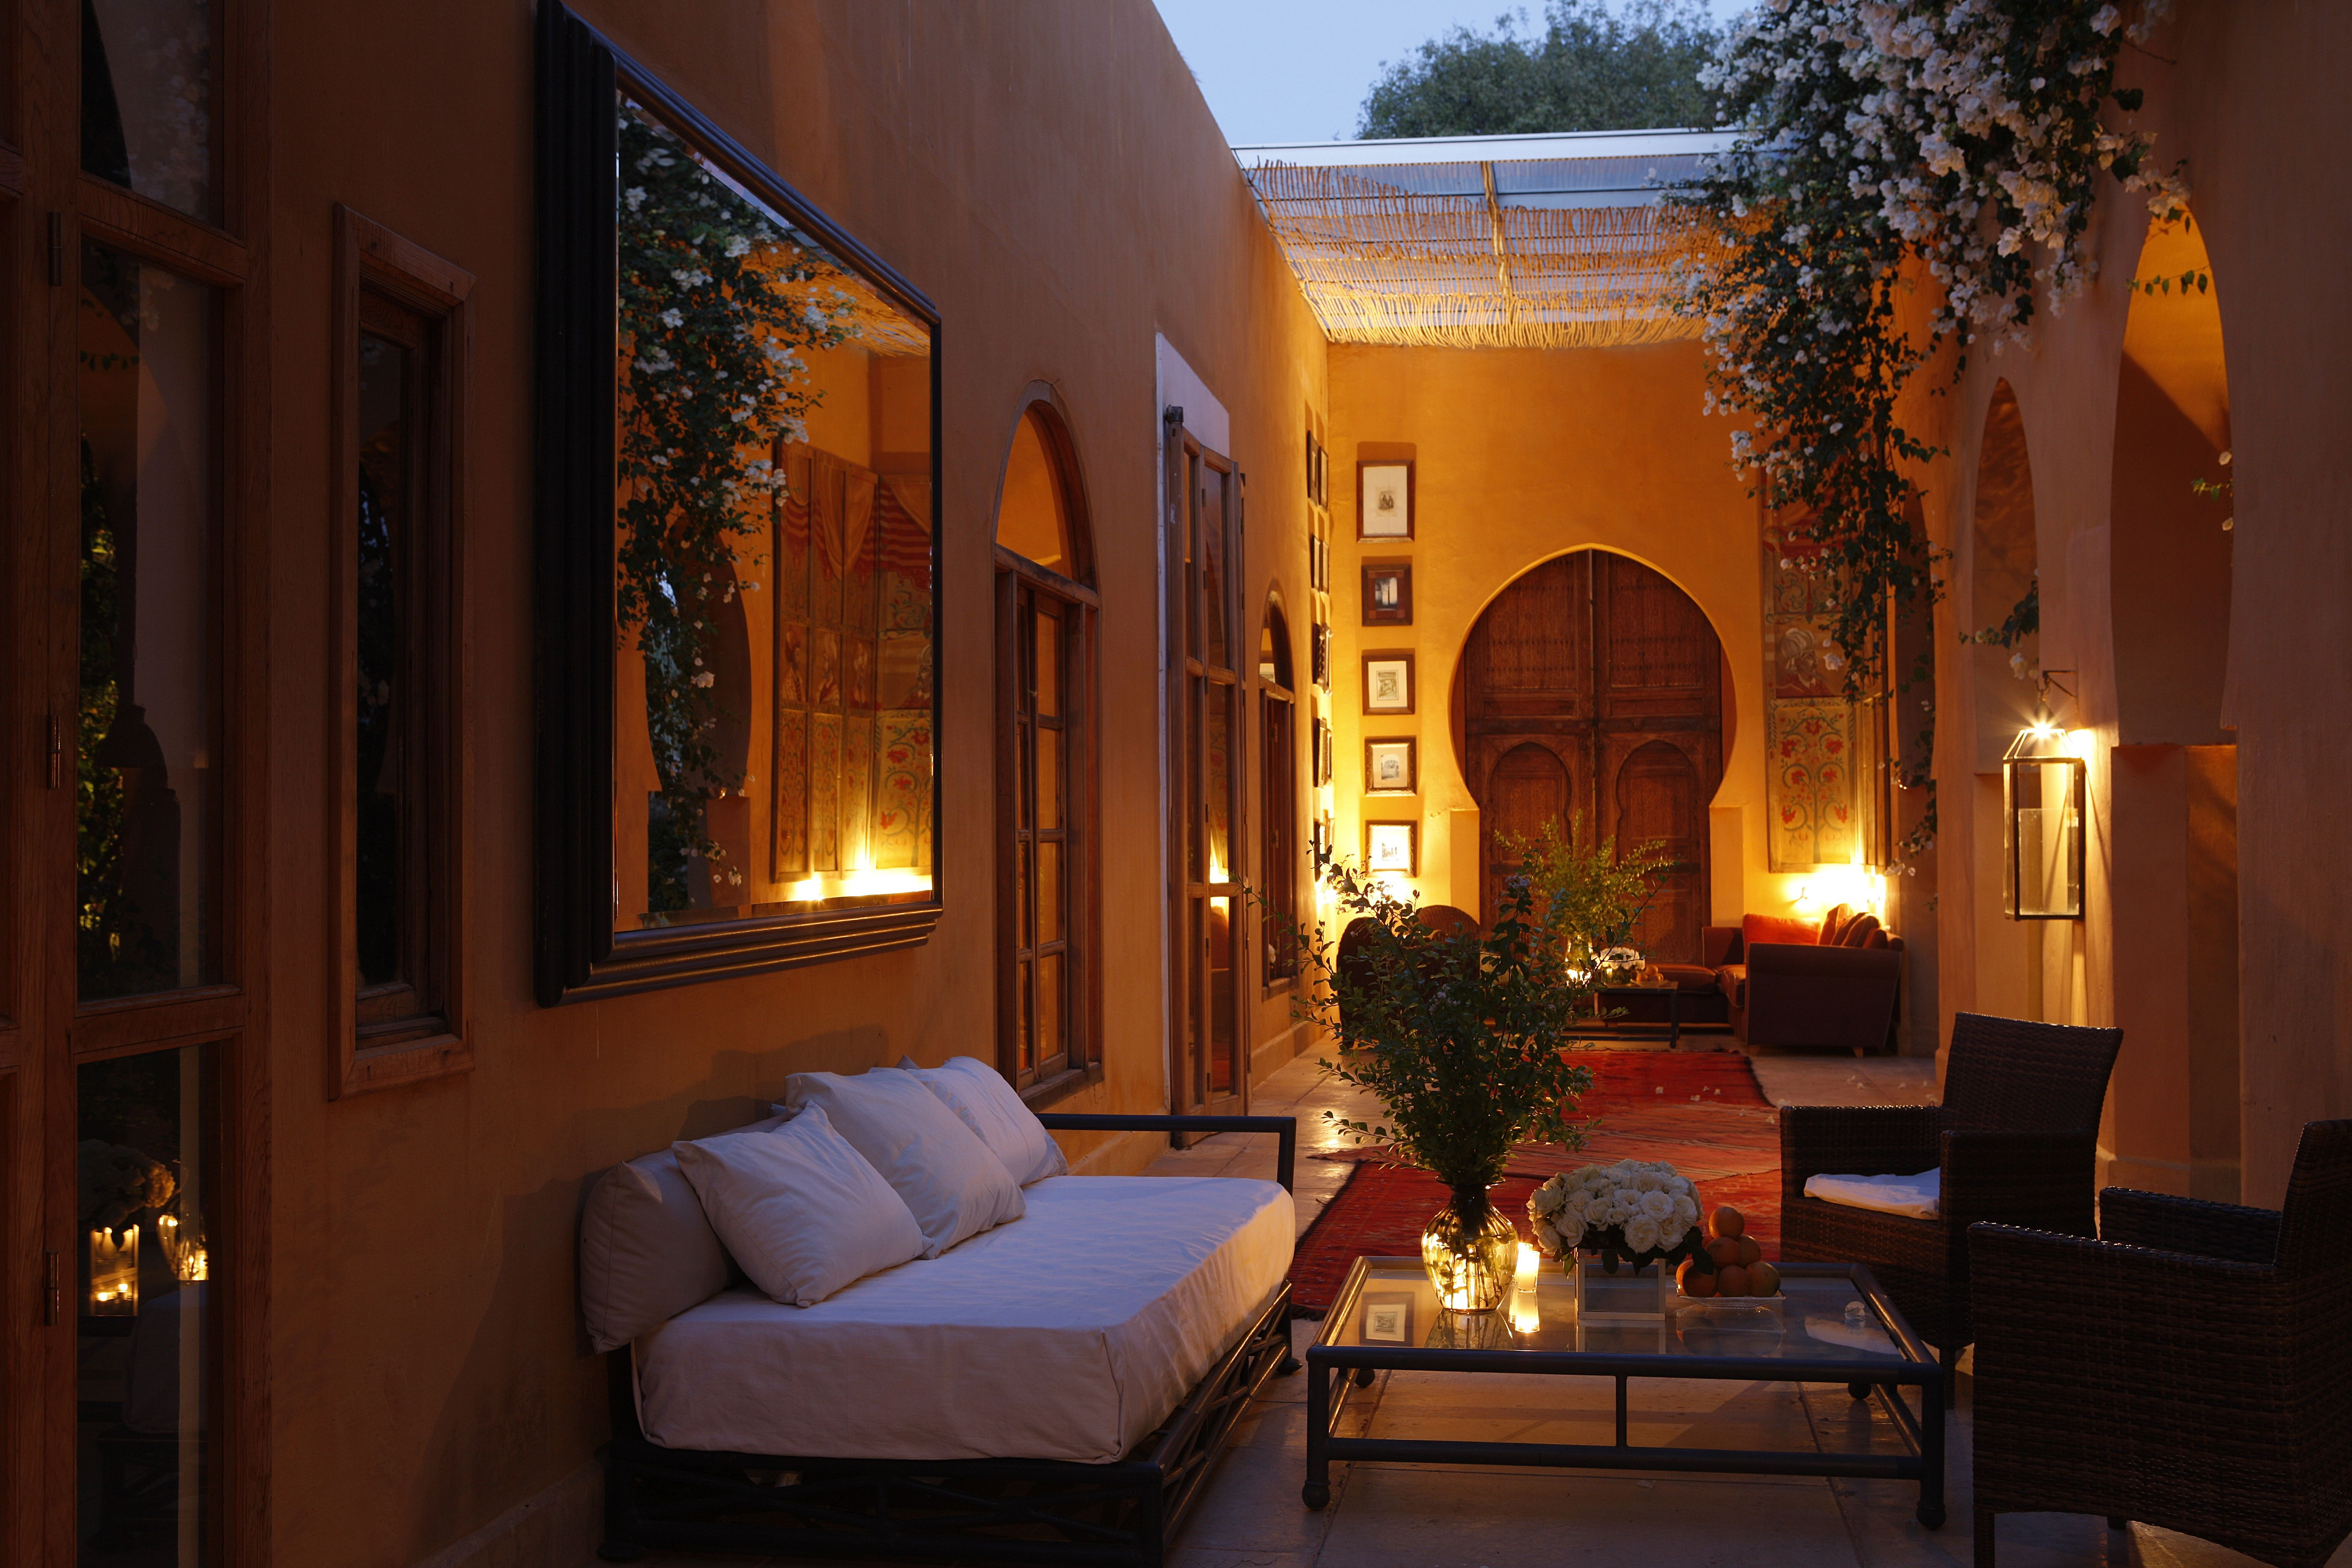 Terrasse Orientale Jnane House Hotel Traditional Moroccan Architecture Ryad Deco